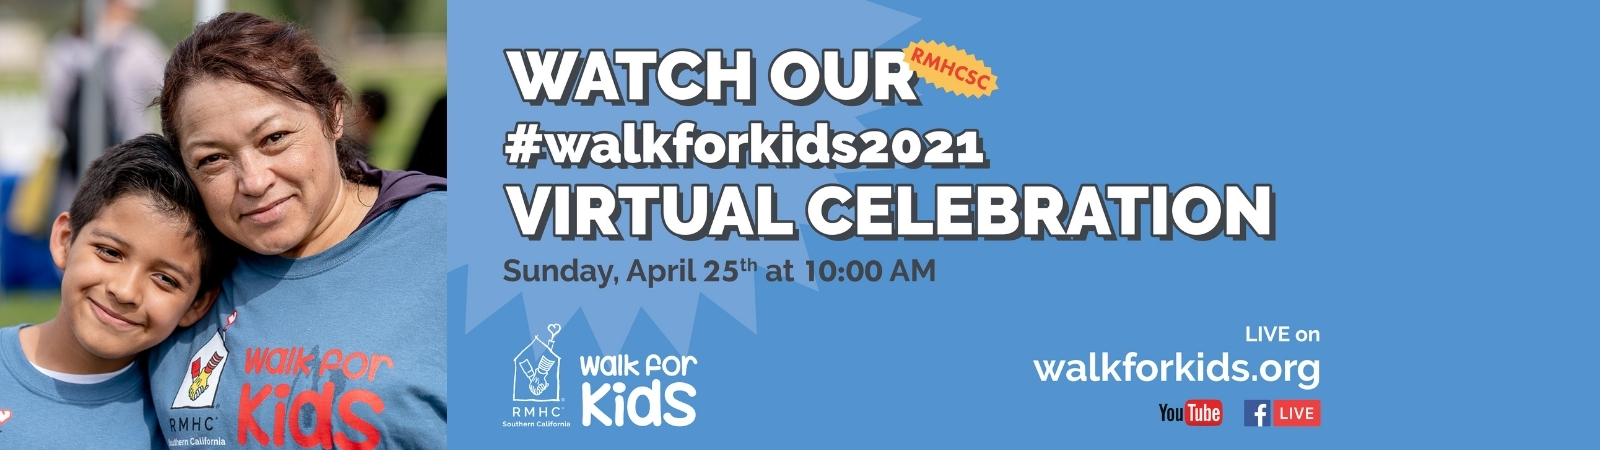 Walk for Kids 2021